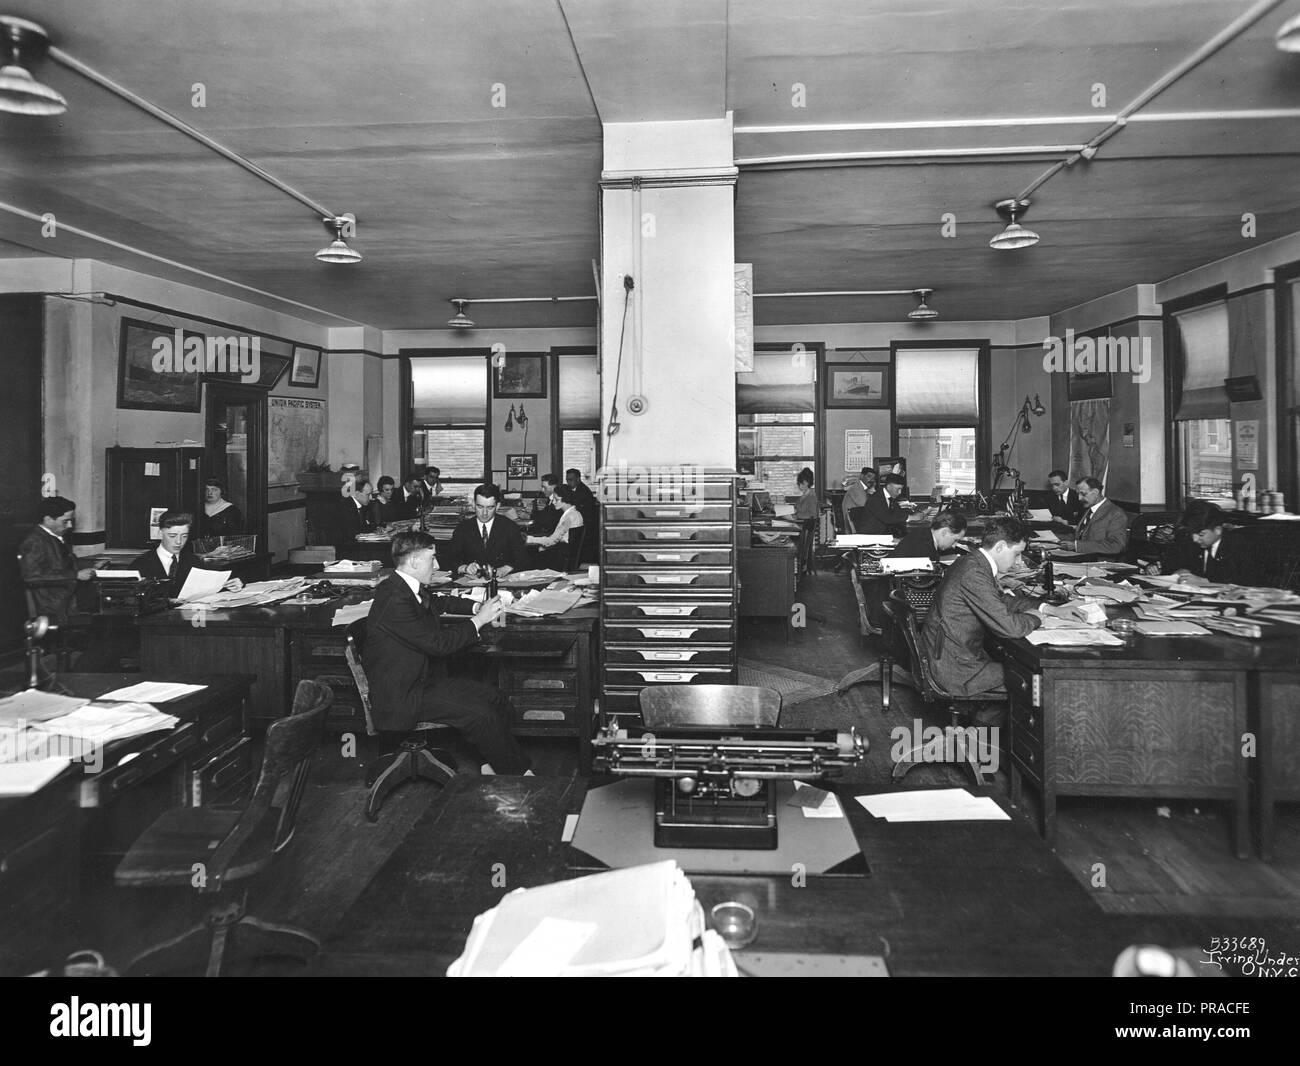 1918 Alien Property Custodian - Property Seized - Gerhard & Hey Inc. New York taken over by the Alien Property Custodian. The Office of the Concern - Stock Image